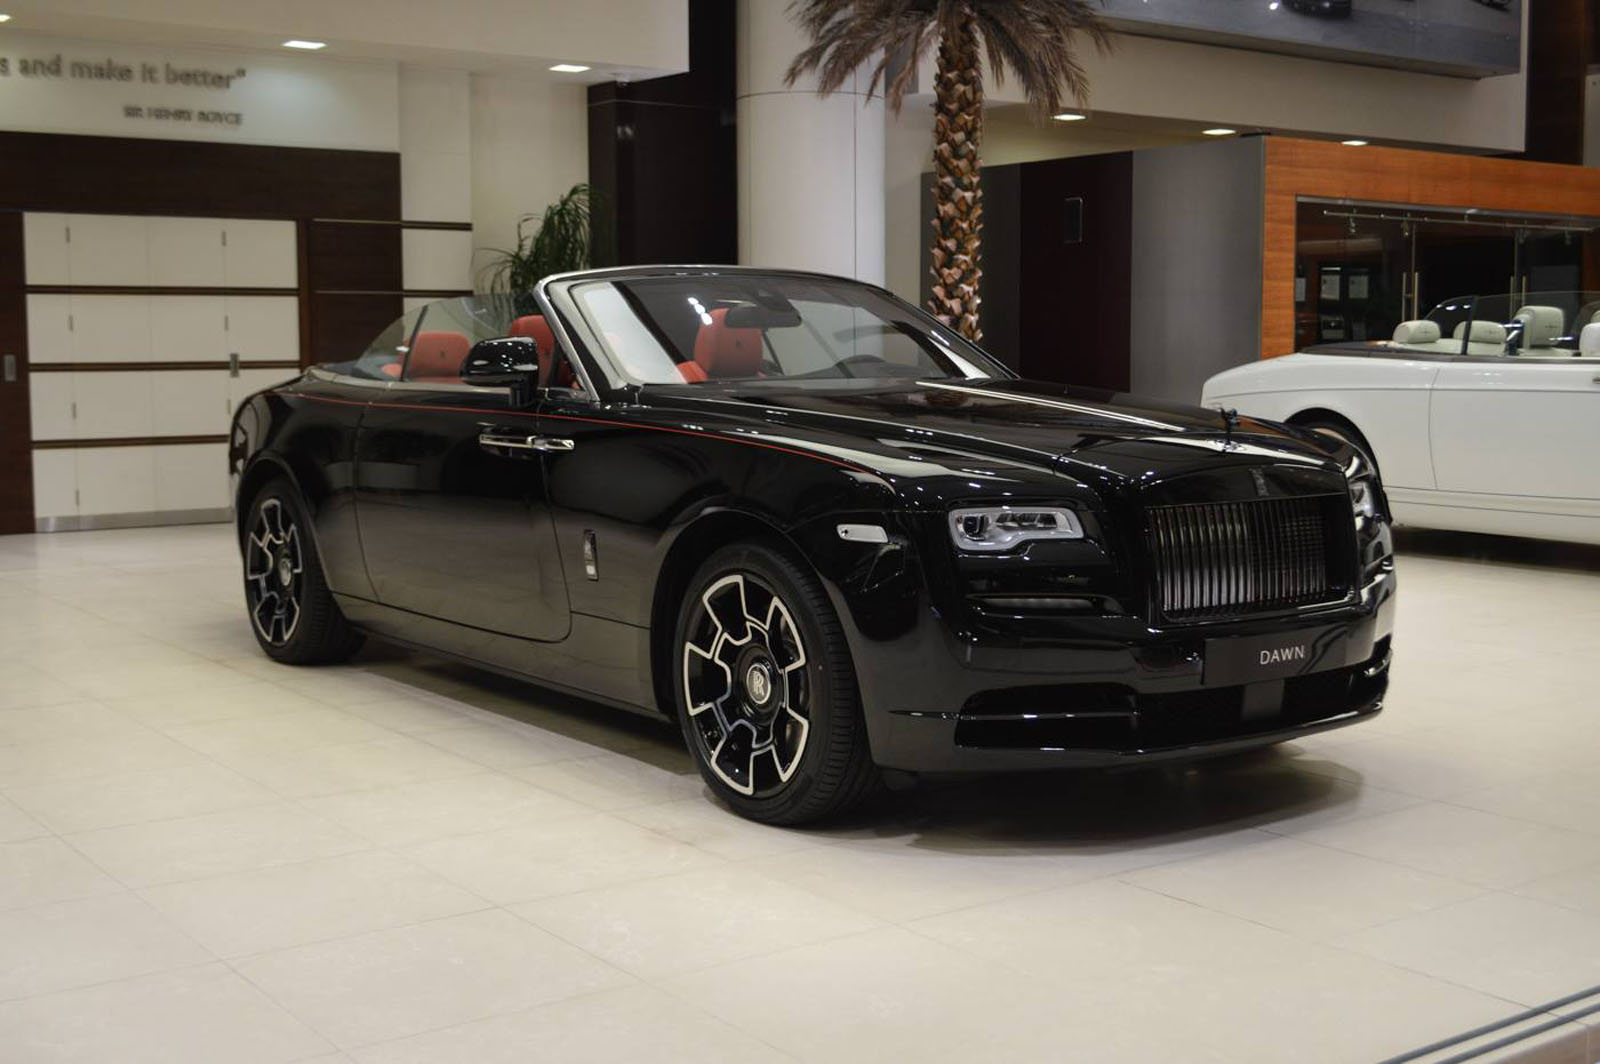 This Rolls Royce Dawn Black Badge Is The Young Enthusiasts